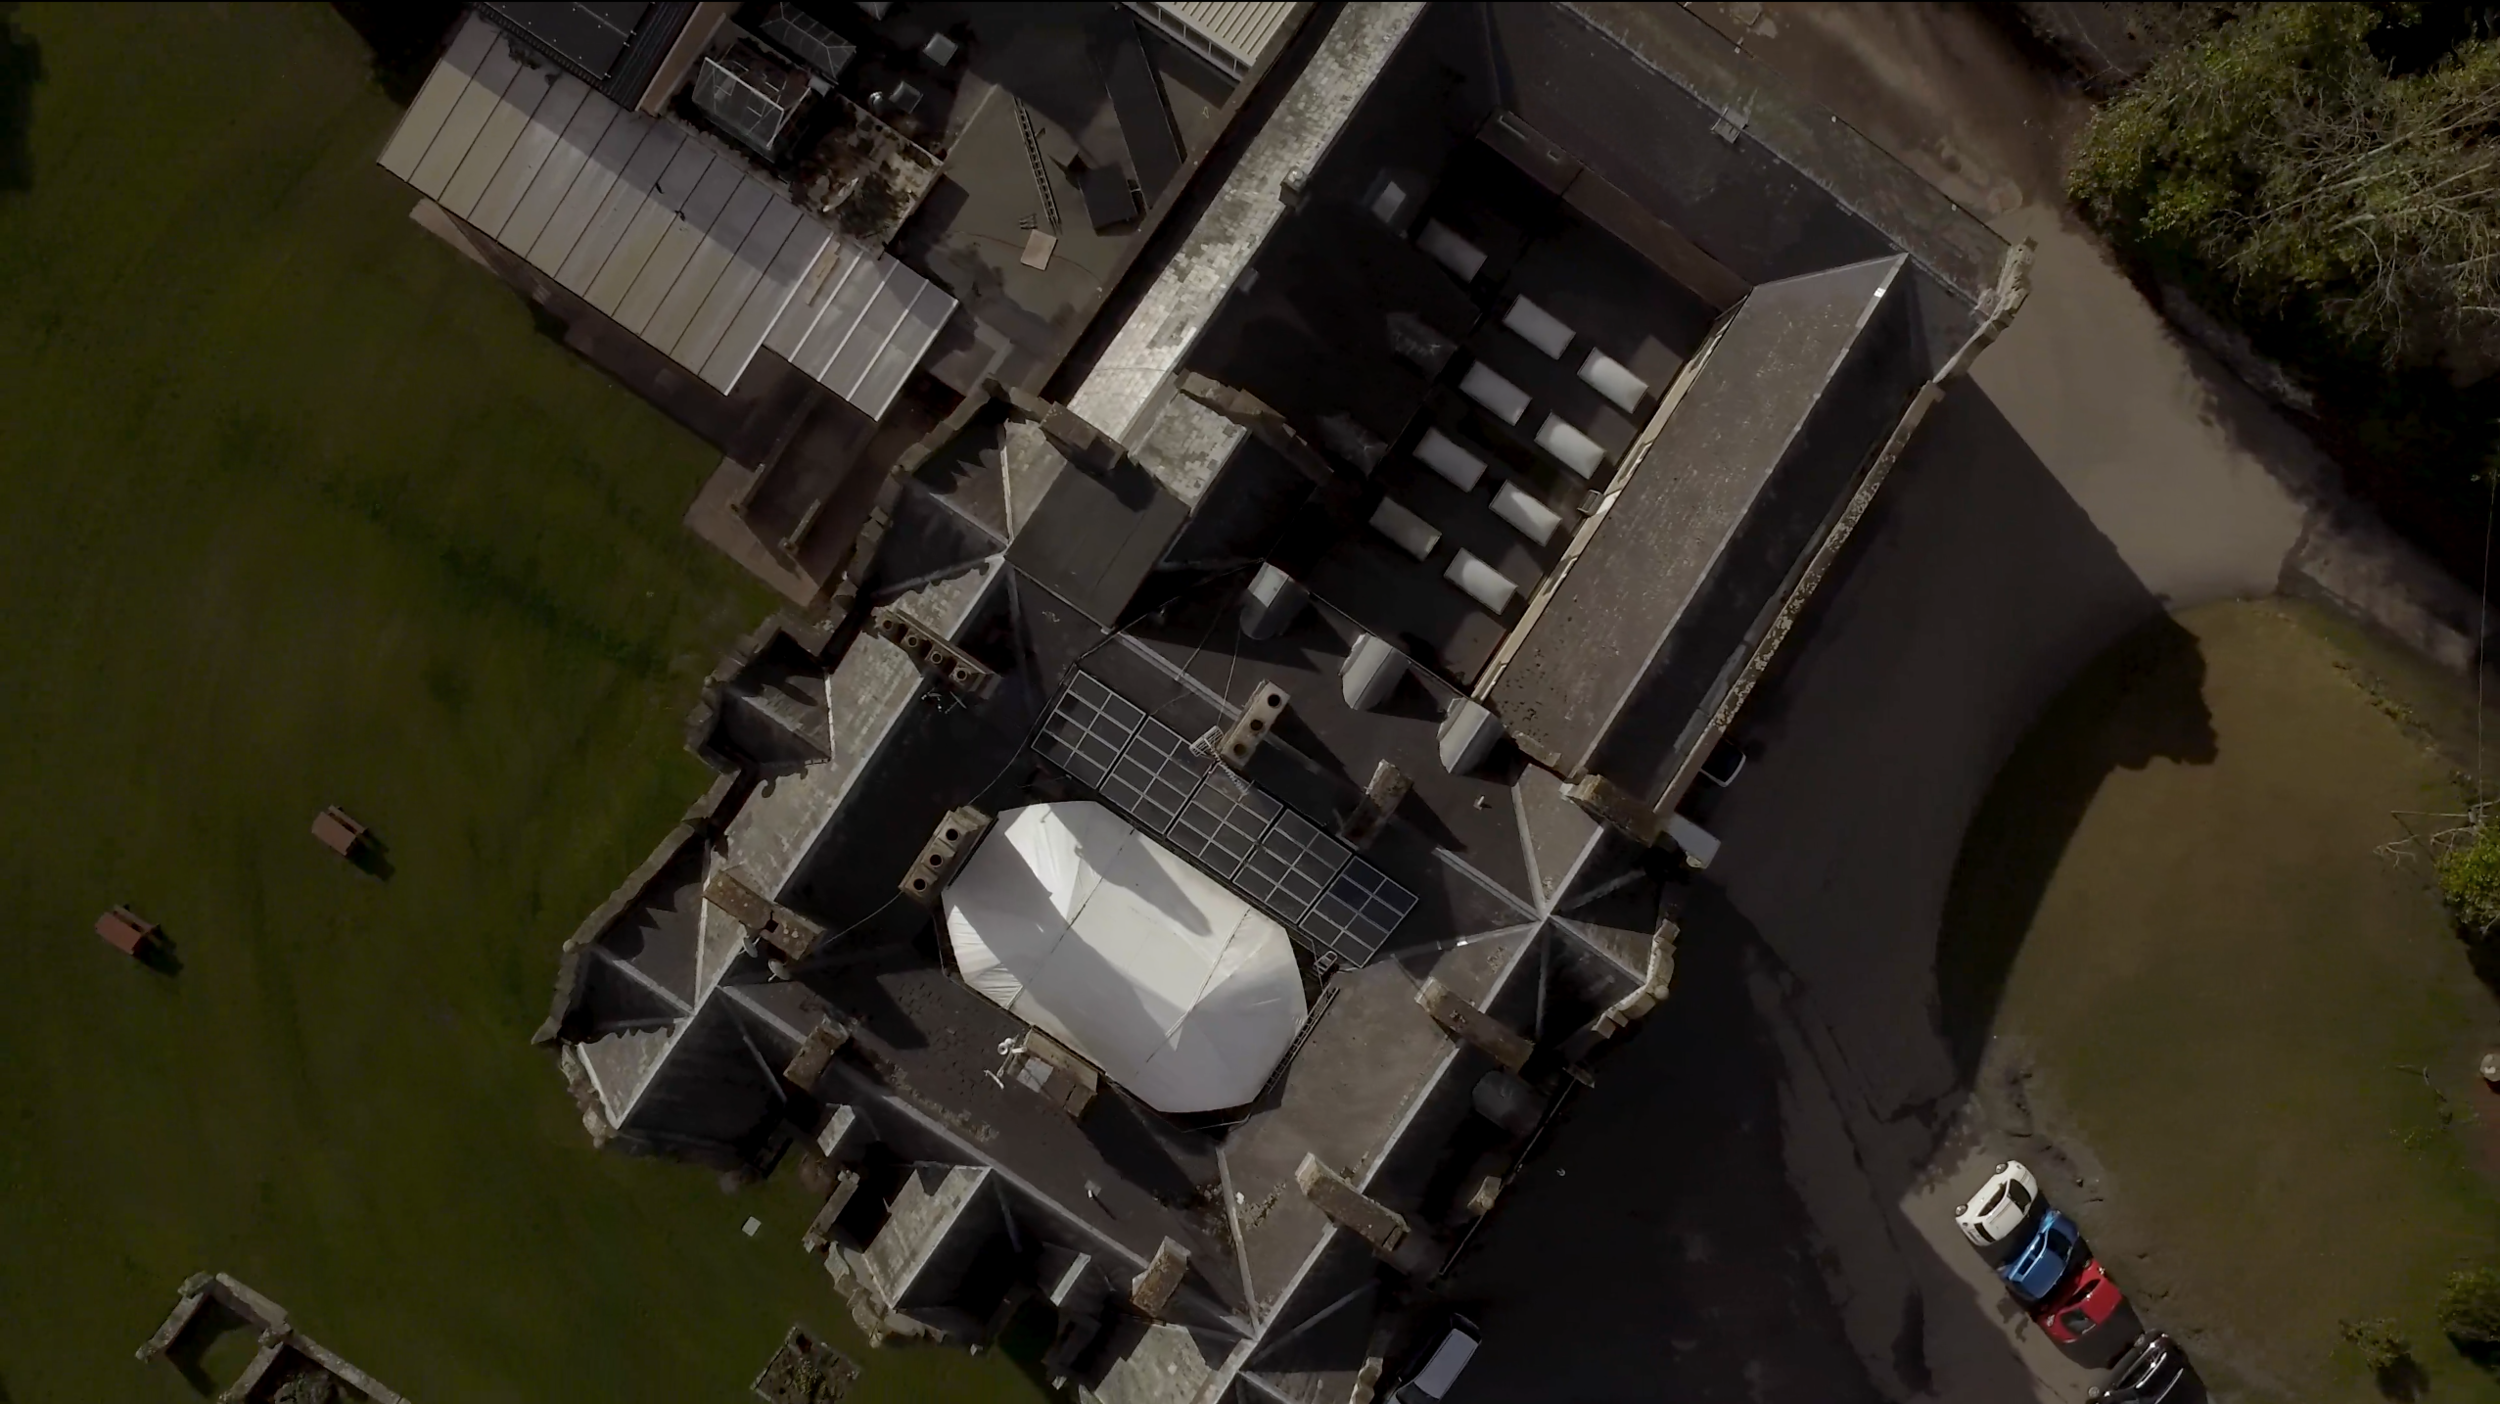 Baskerville Hall from the air - Harper Visuals - Geoff Harper